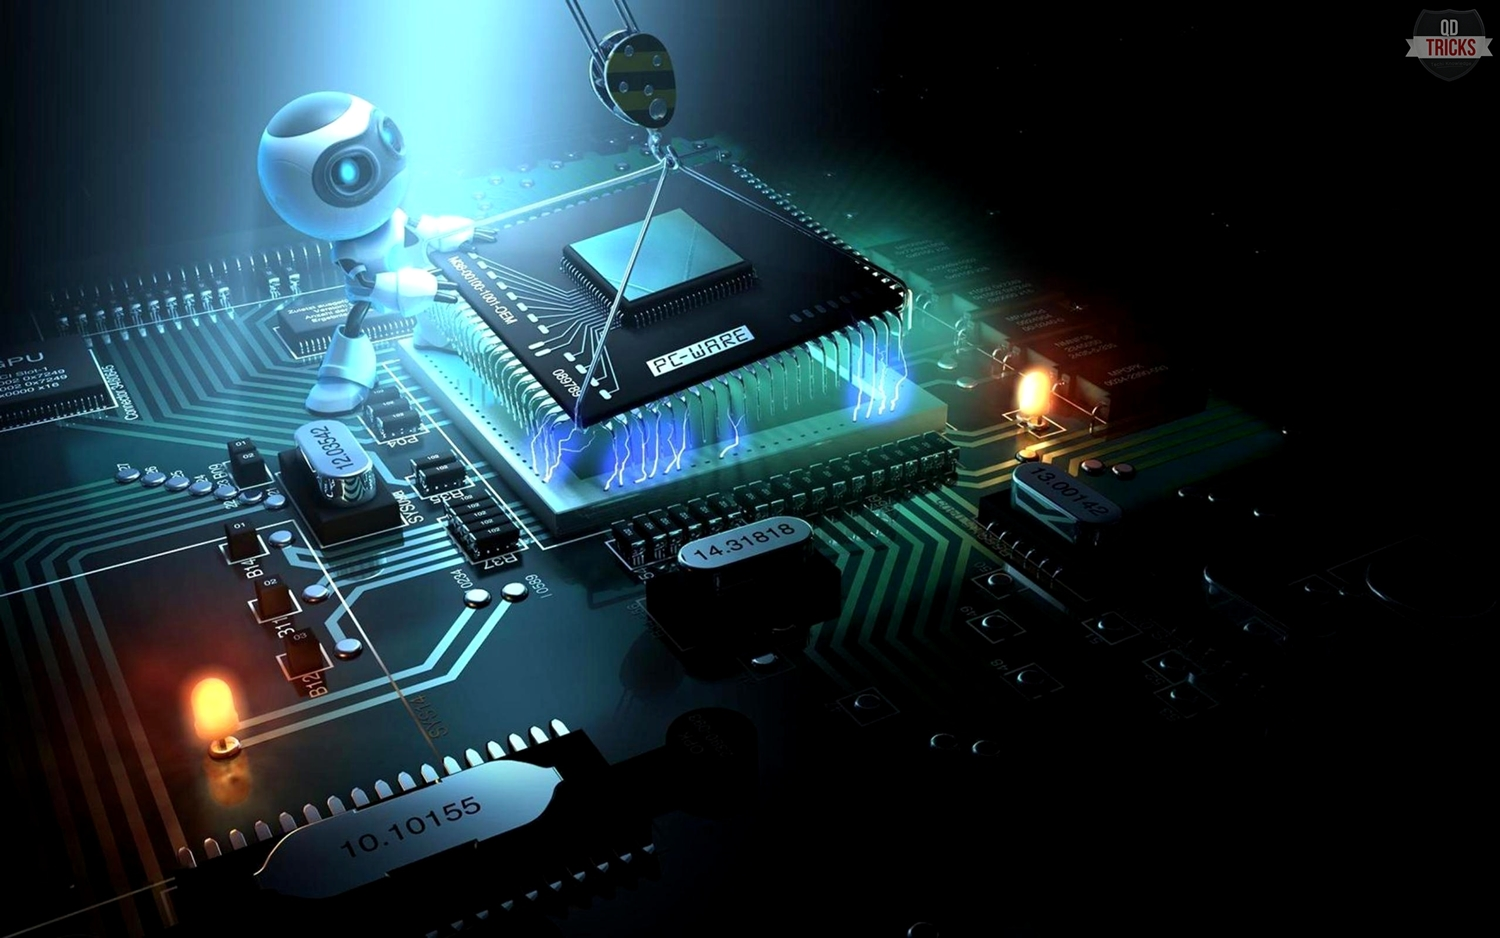 best free hd technology wallpapers for laptop/ desktop pc and